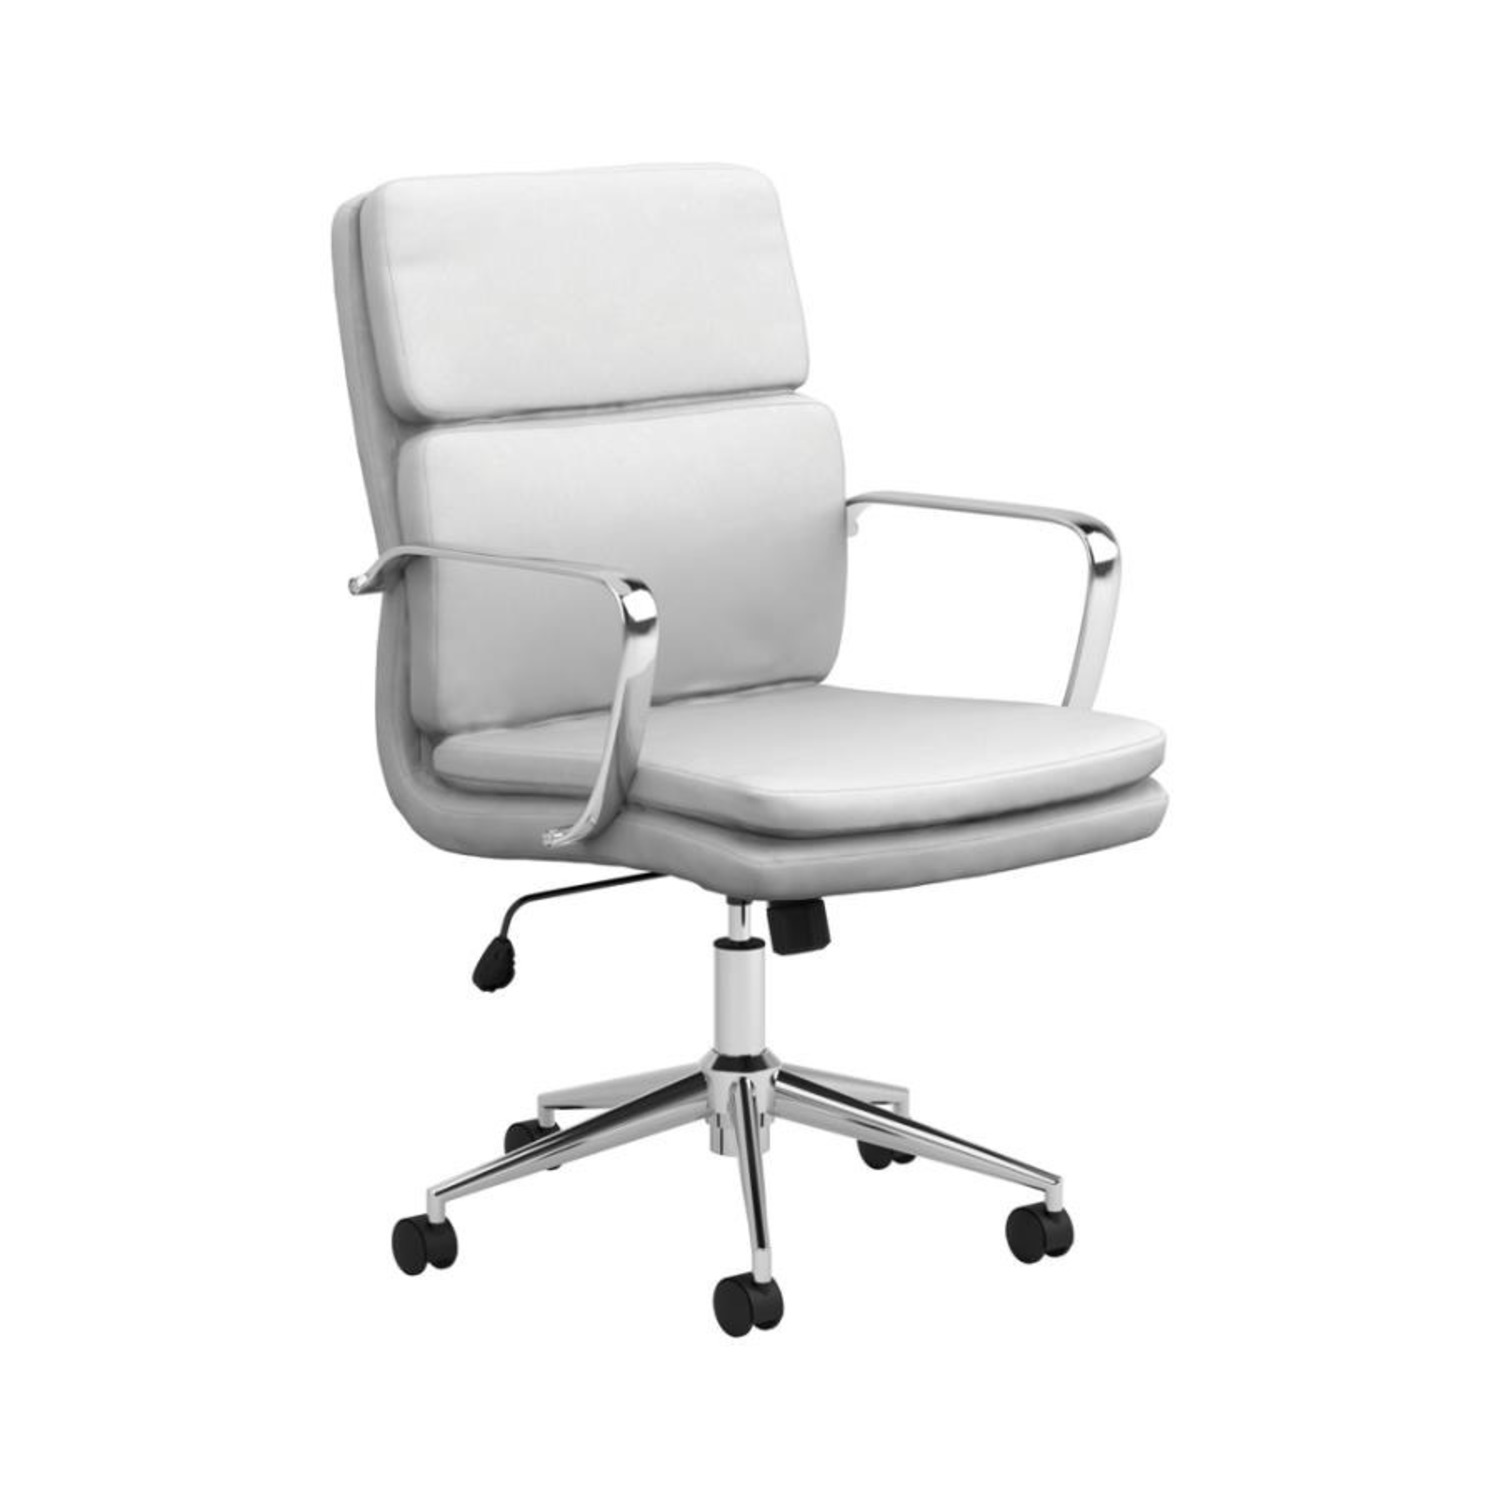 Office Chair In White Leatherette & Chrome Finish - image-0